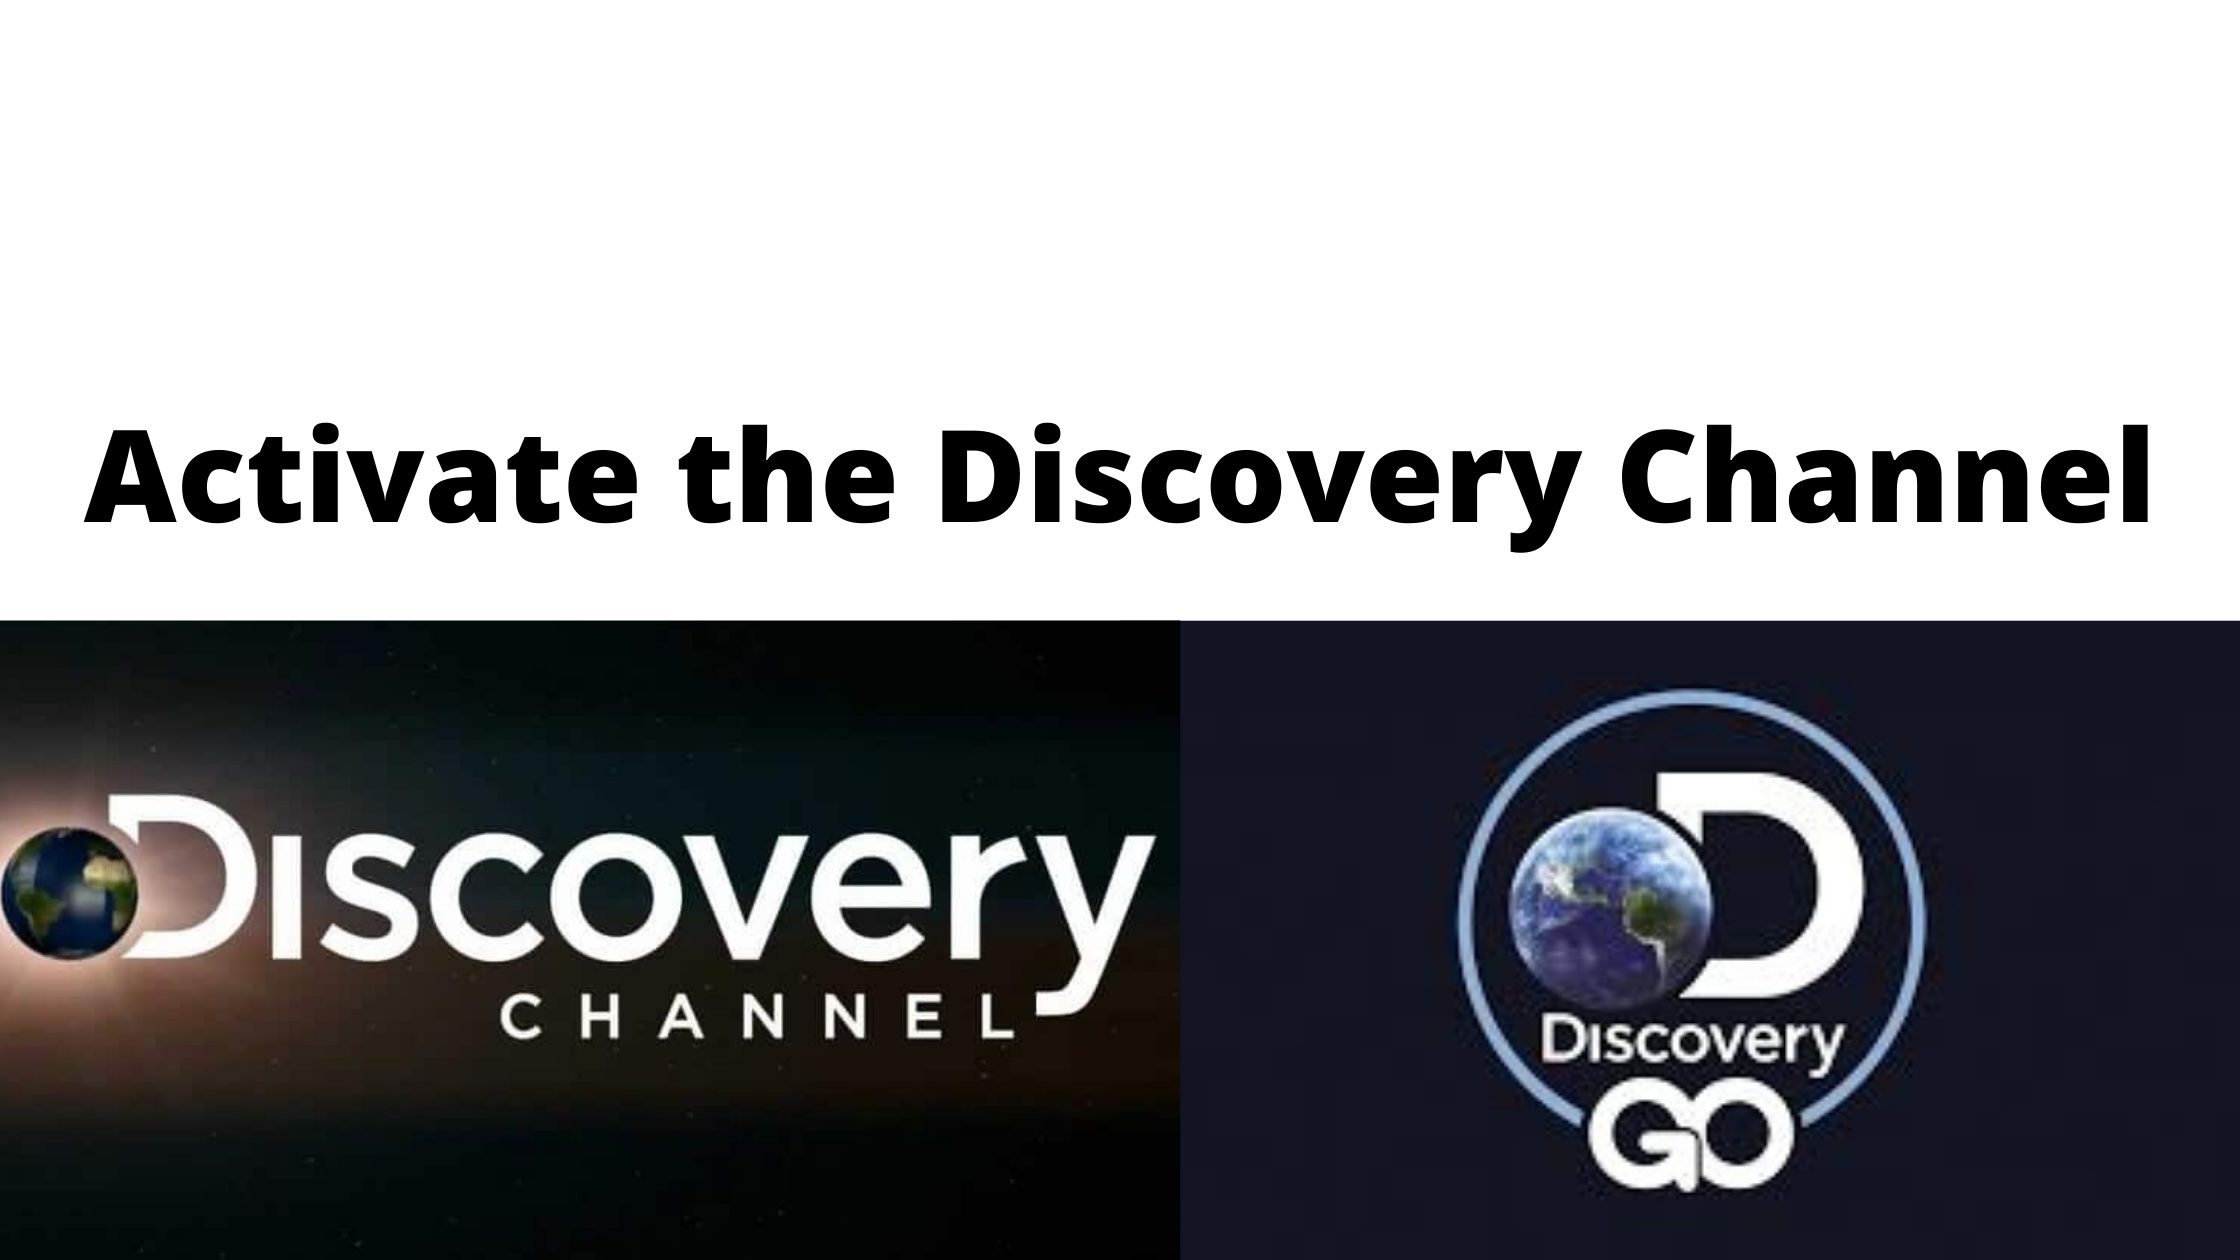 How to Activate Discovery Channel